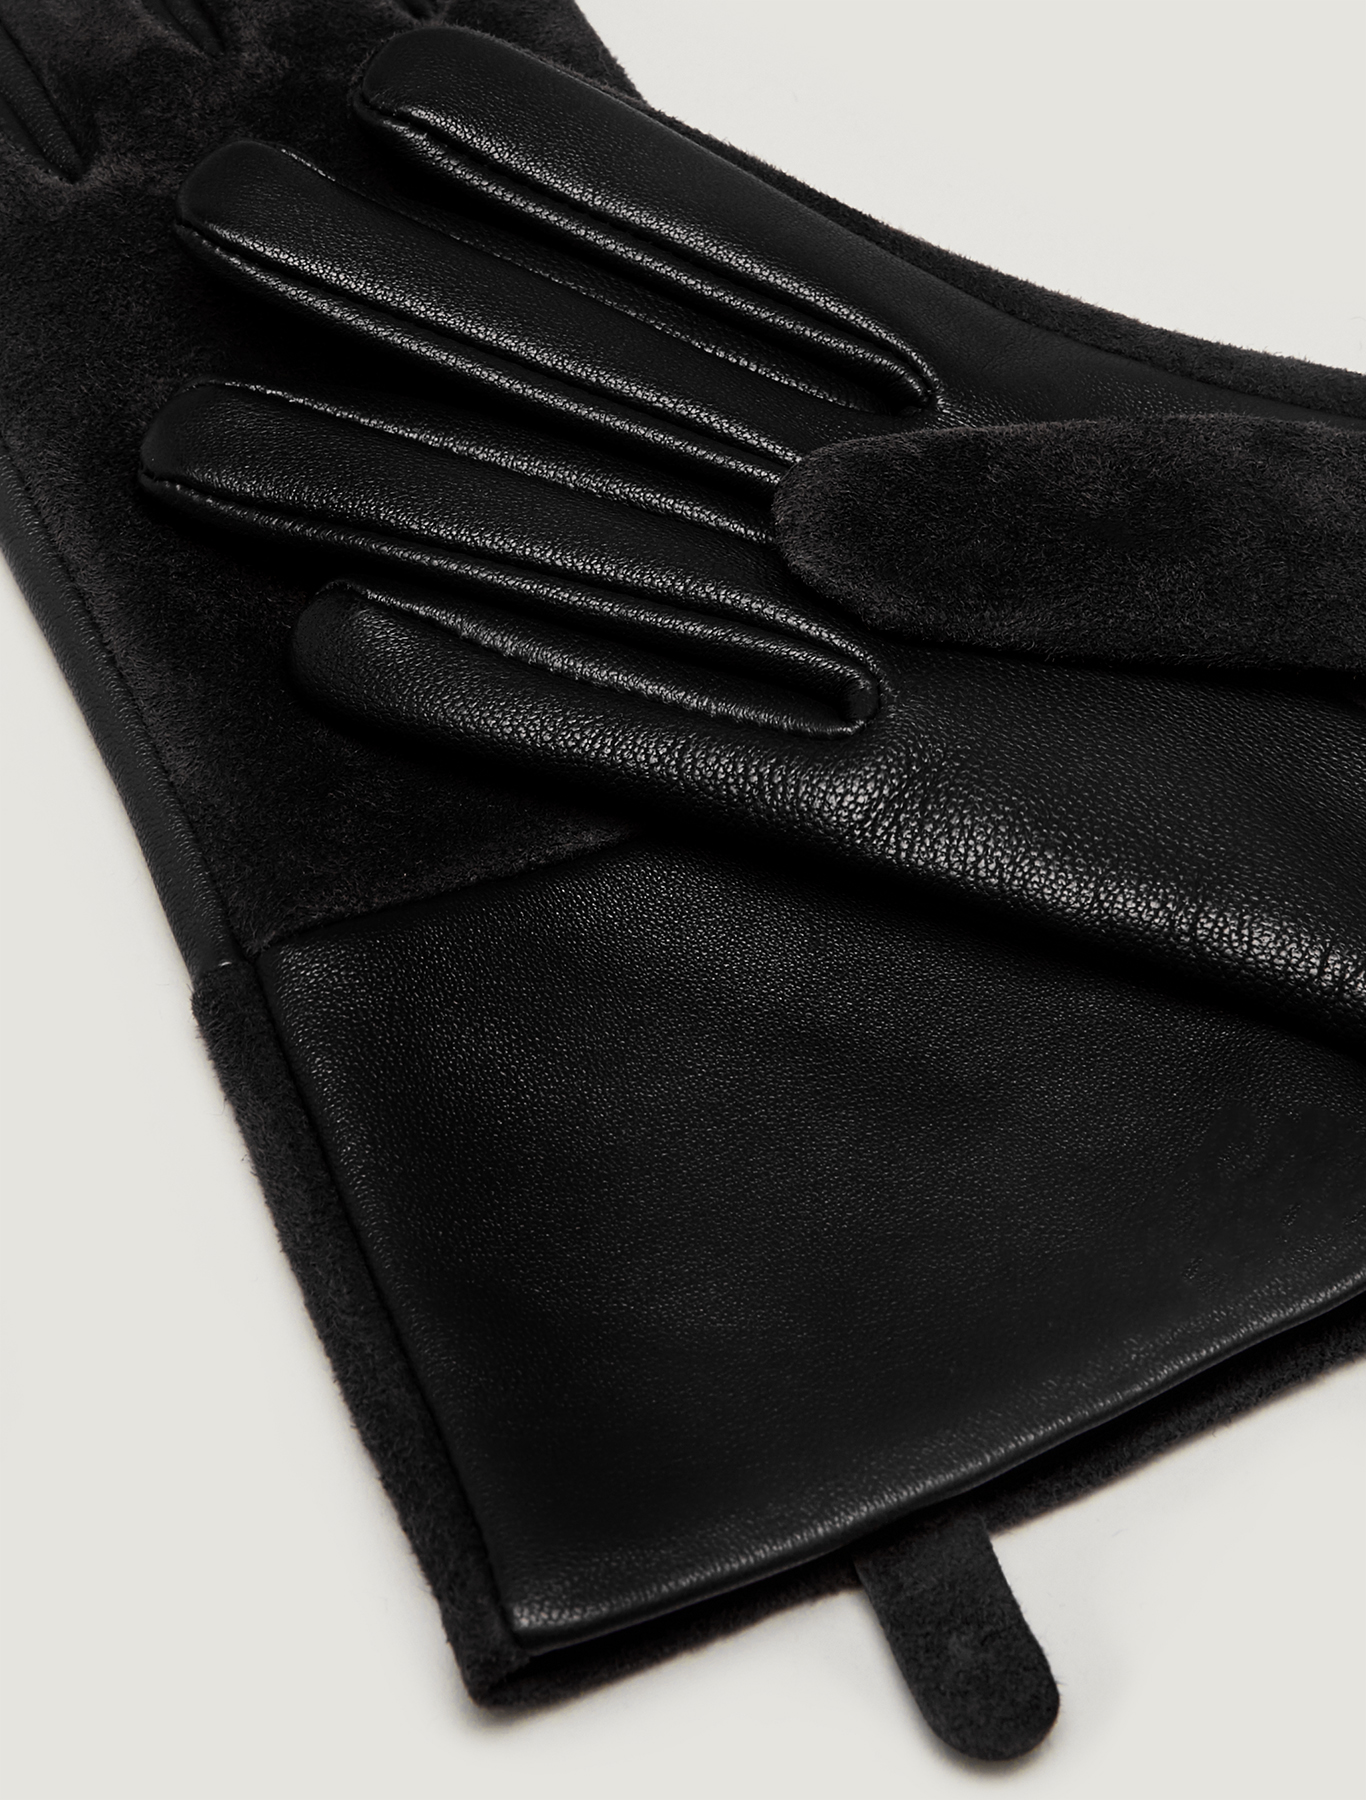 Nappa leather and suede gloves - black - pennyblack